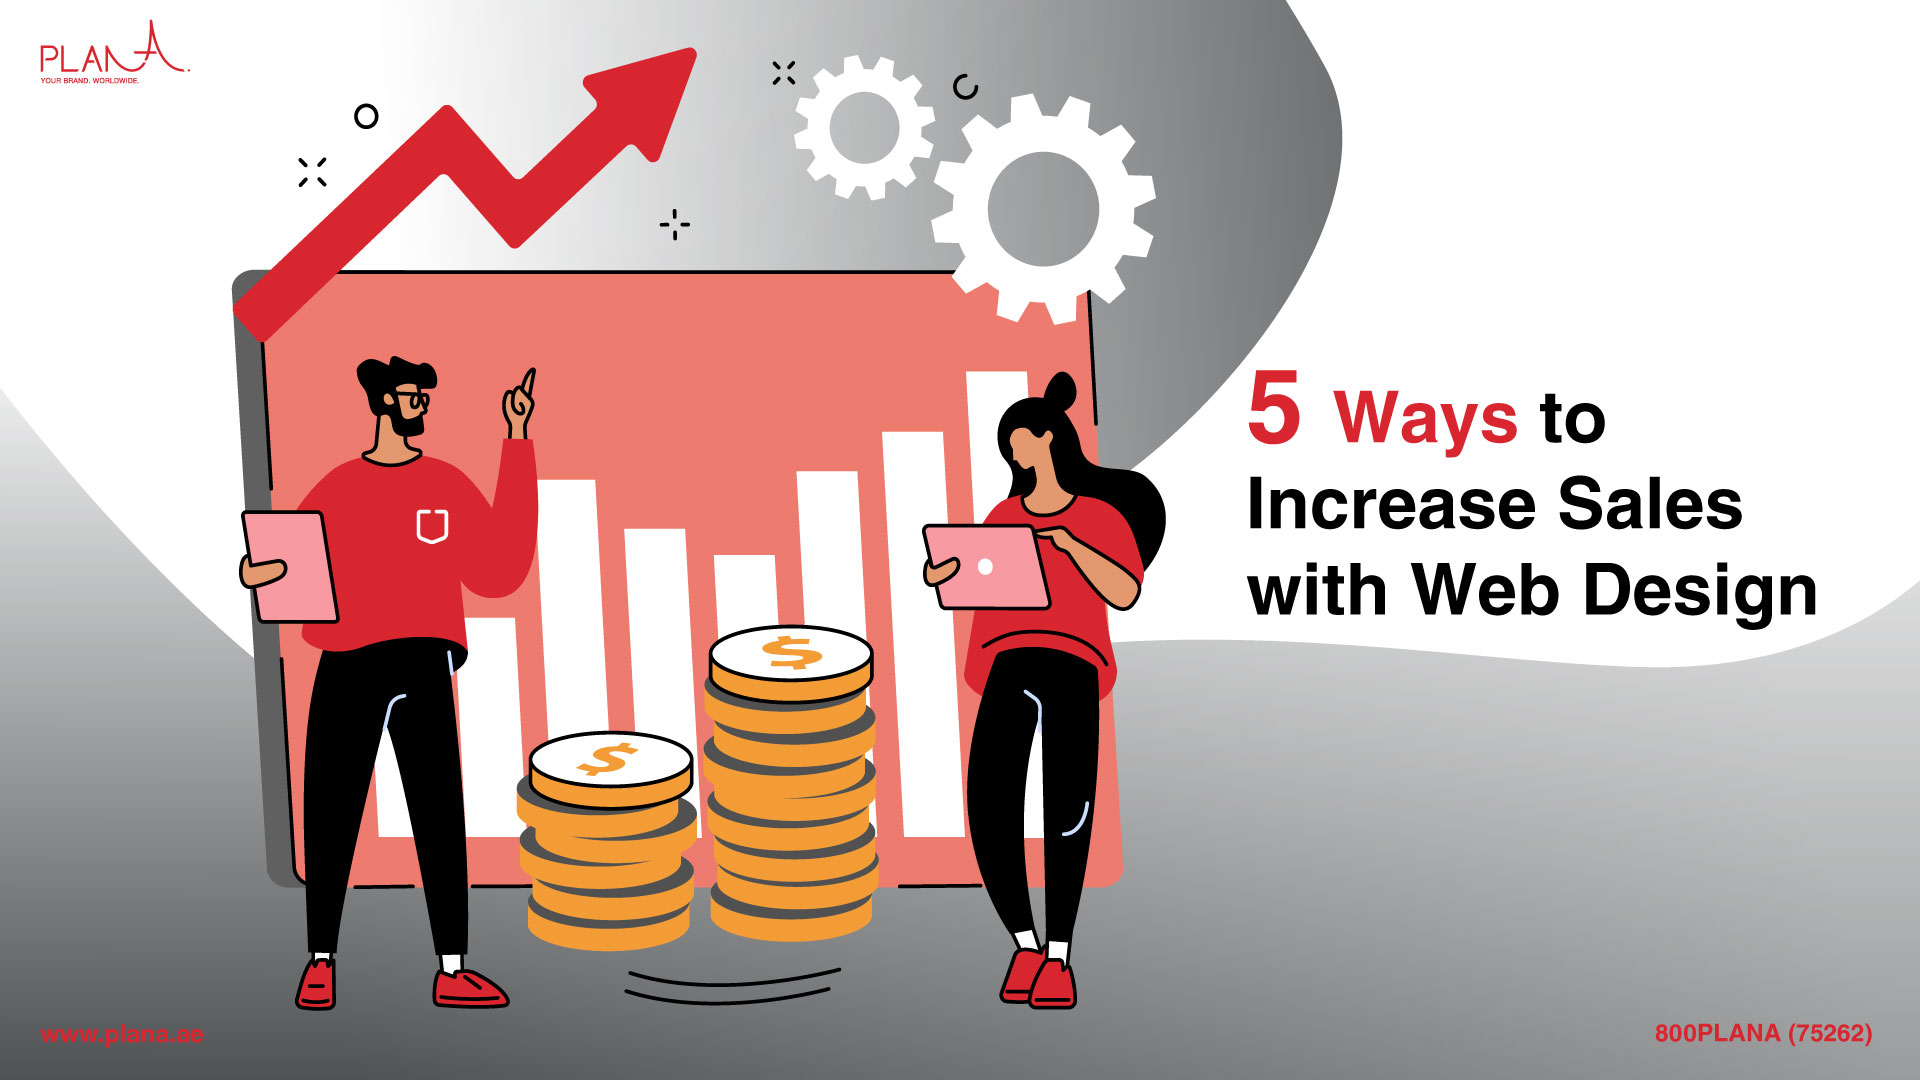 5 Ways to Increase Sales with Web Design